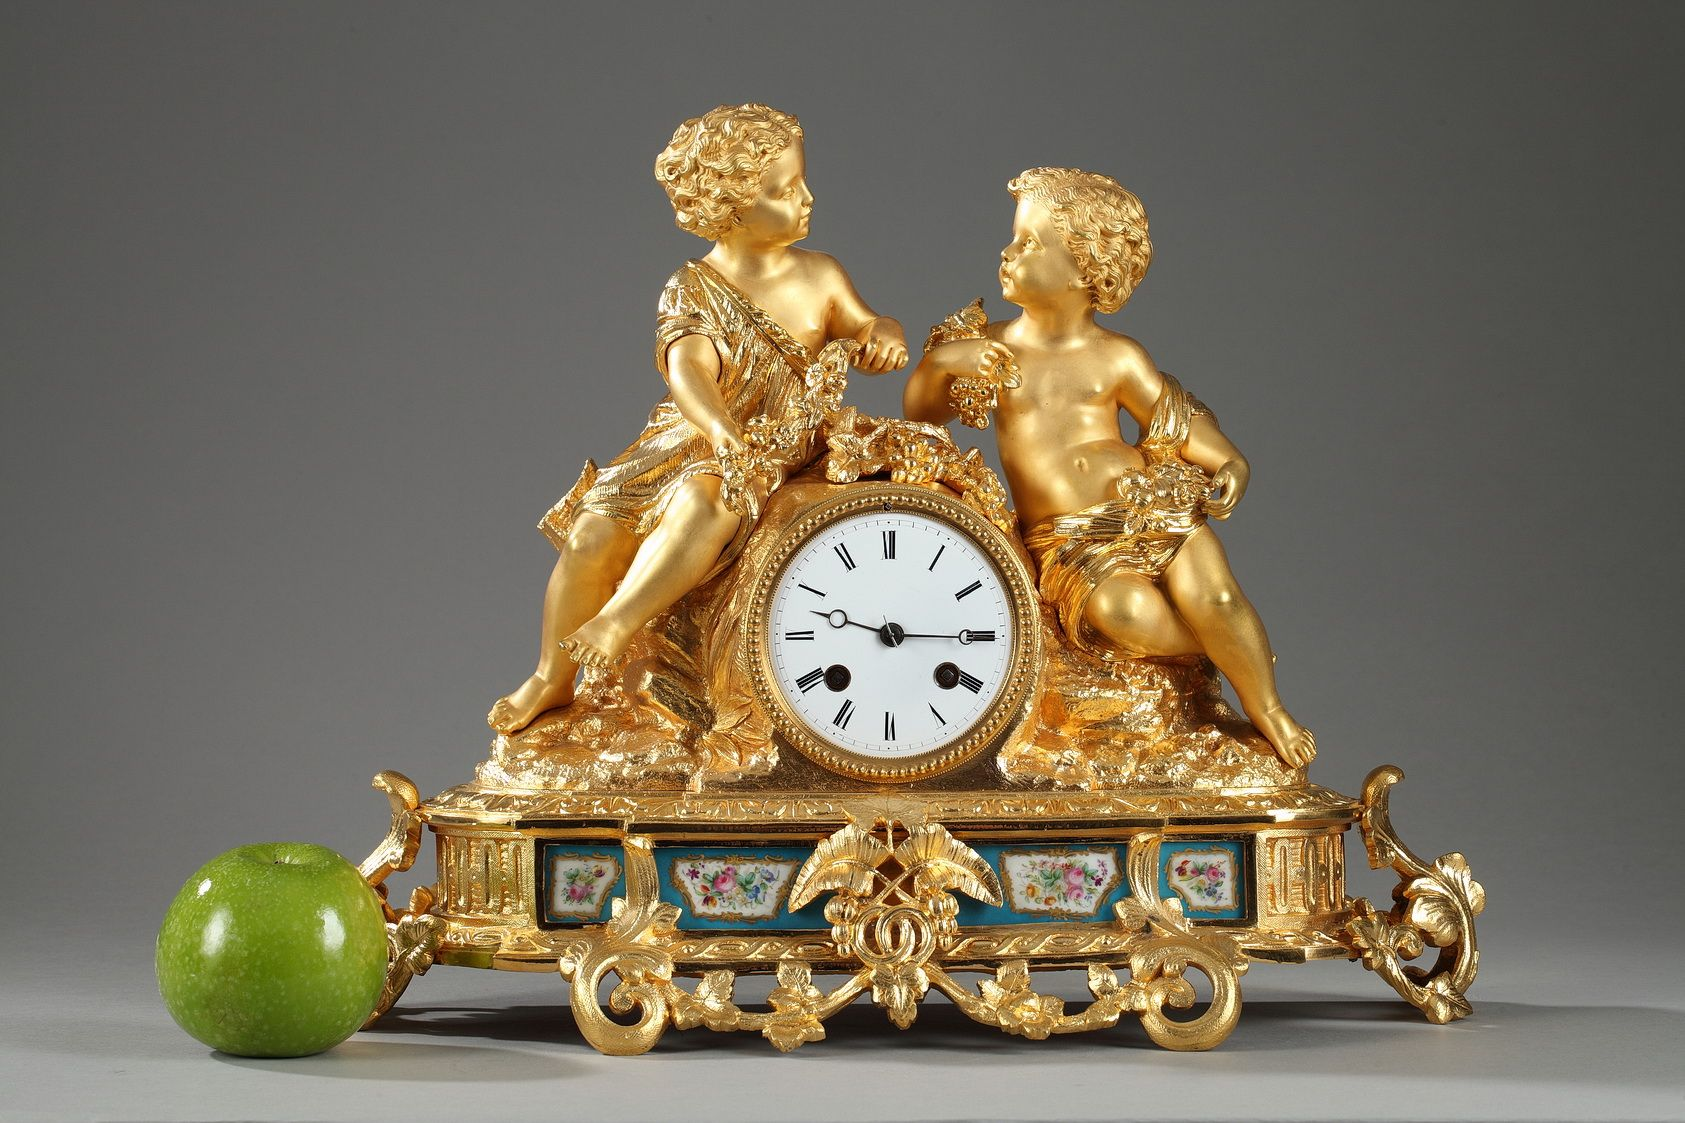 An ormolu mantel clock with two children picking fruits and flowers, sitting on a rock, above an oval  base richly decorated with interlacing, foliated scrolls and polychromatic porcelain pl